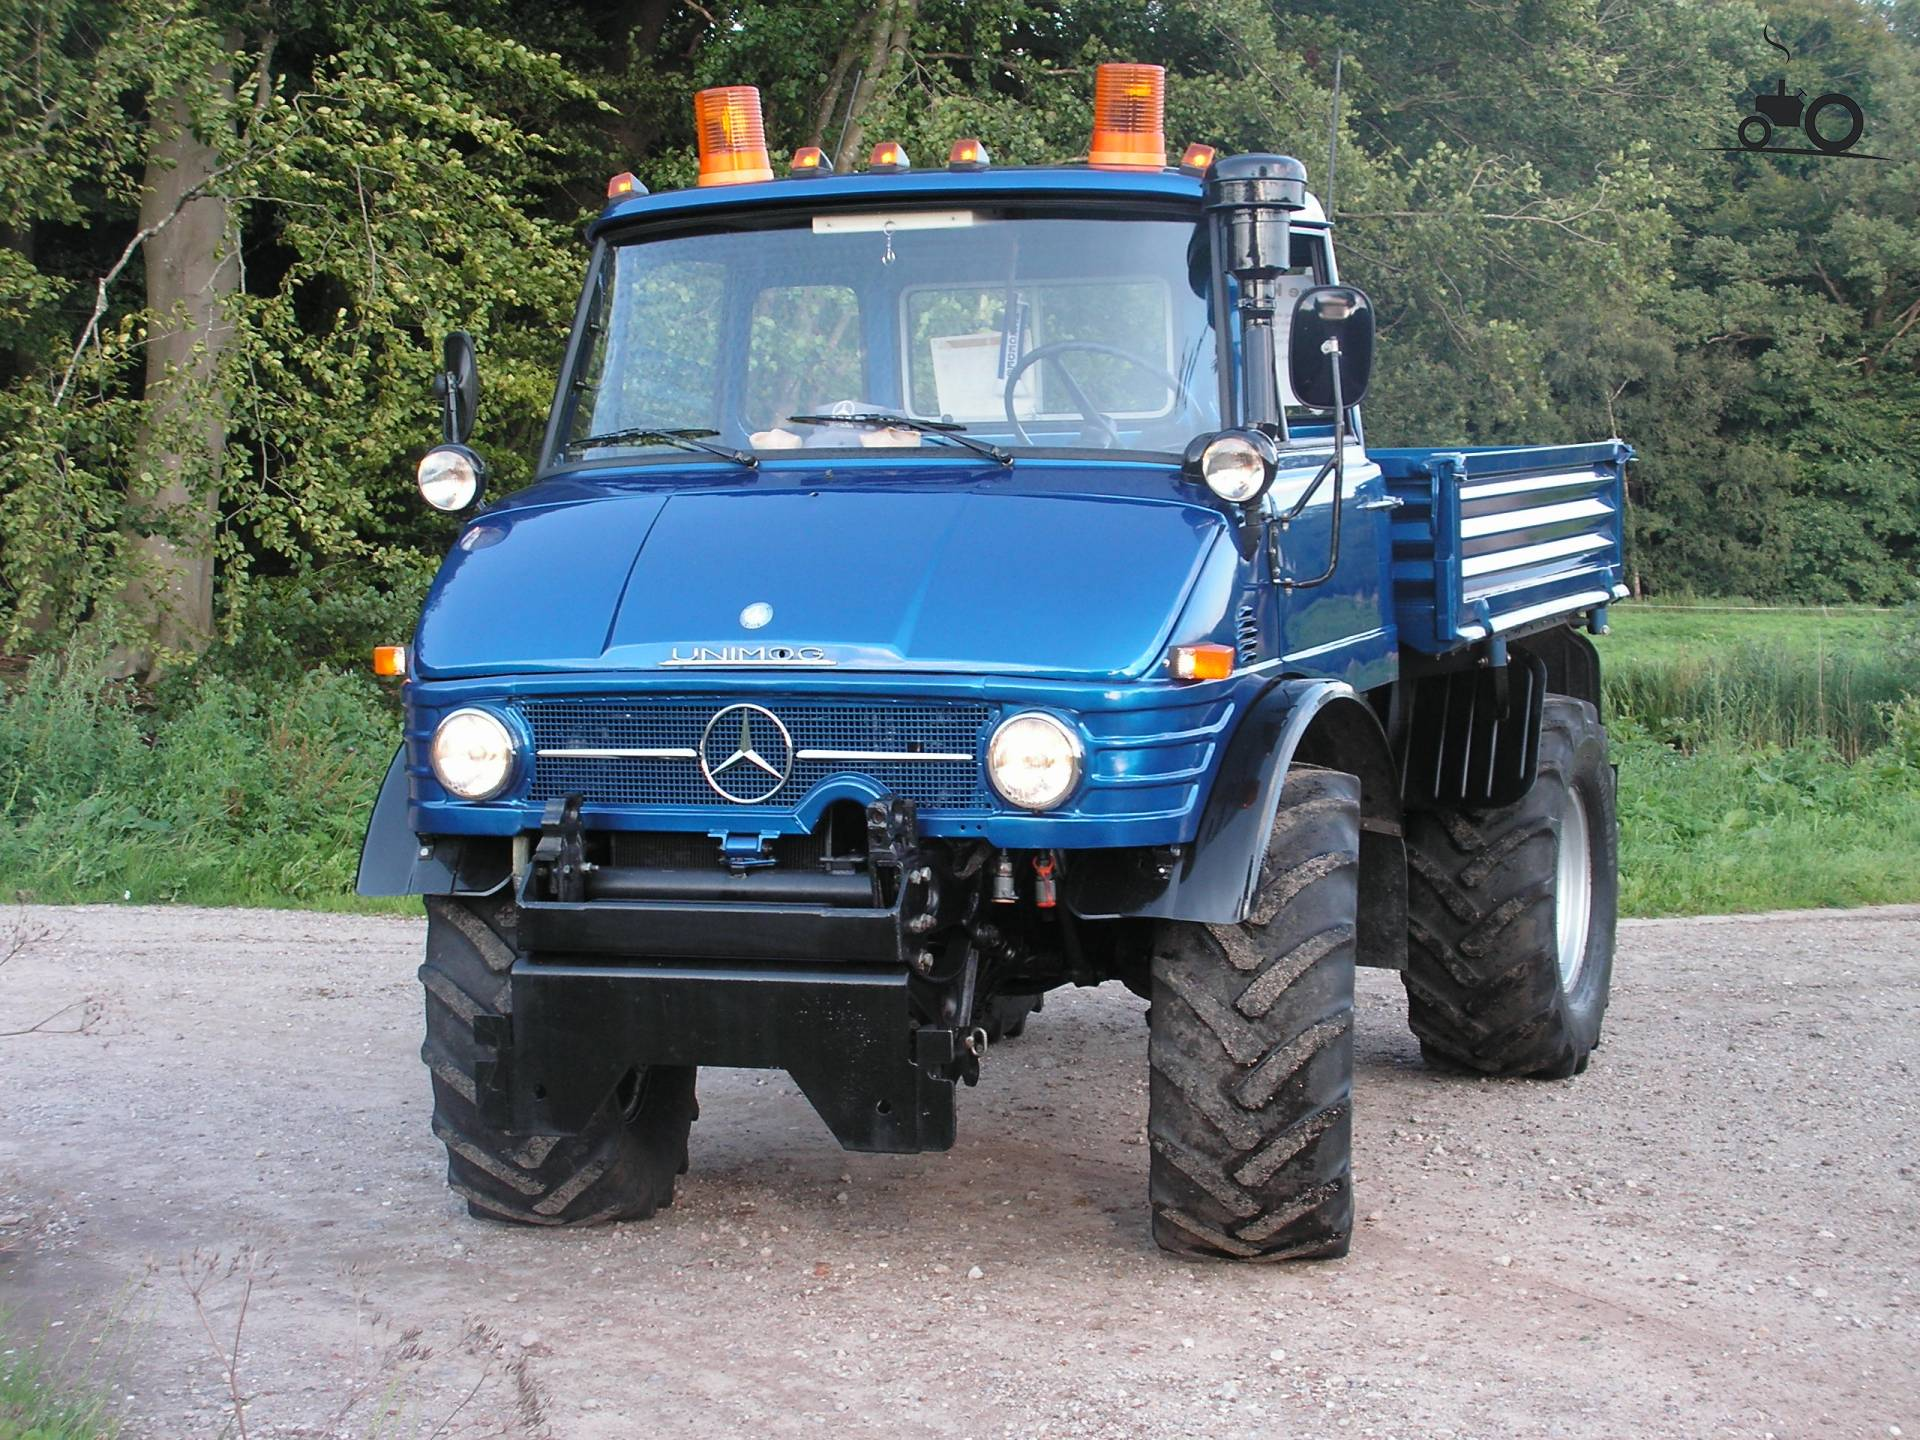 unimog 406 mercedes unimog 406 doppelkabine 1975. Black Bedroom Furniture Sets. Home Design Ideas